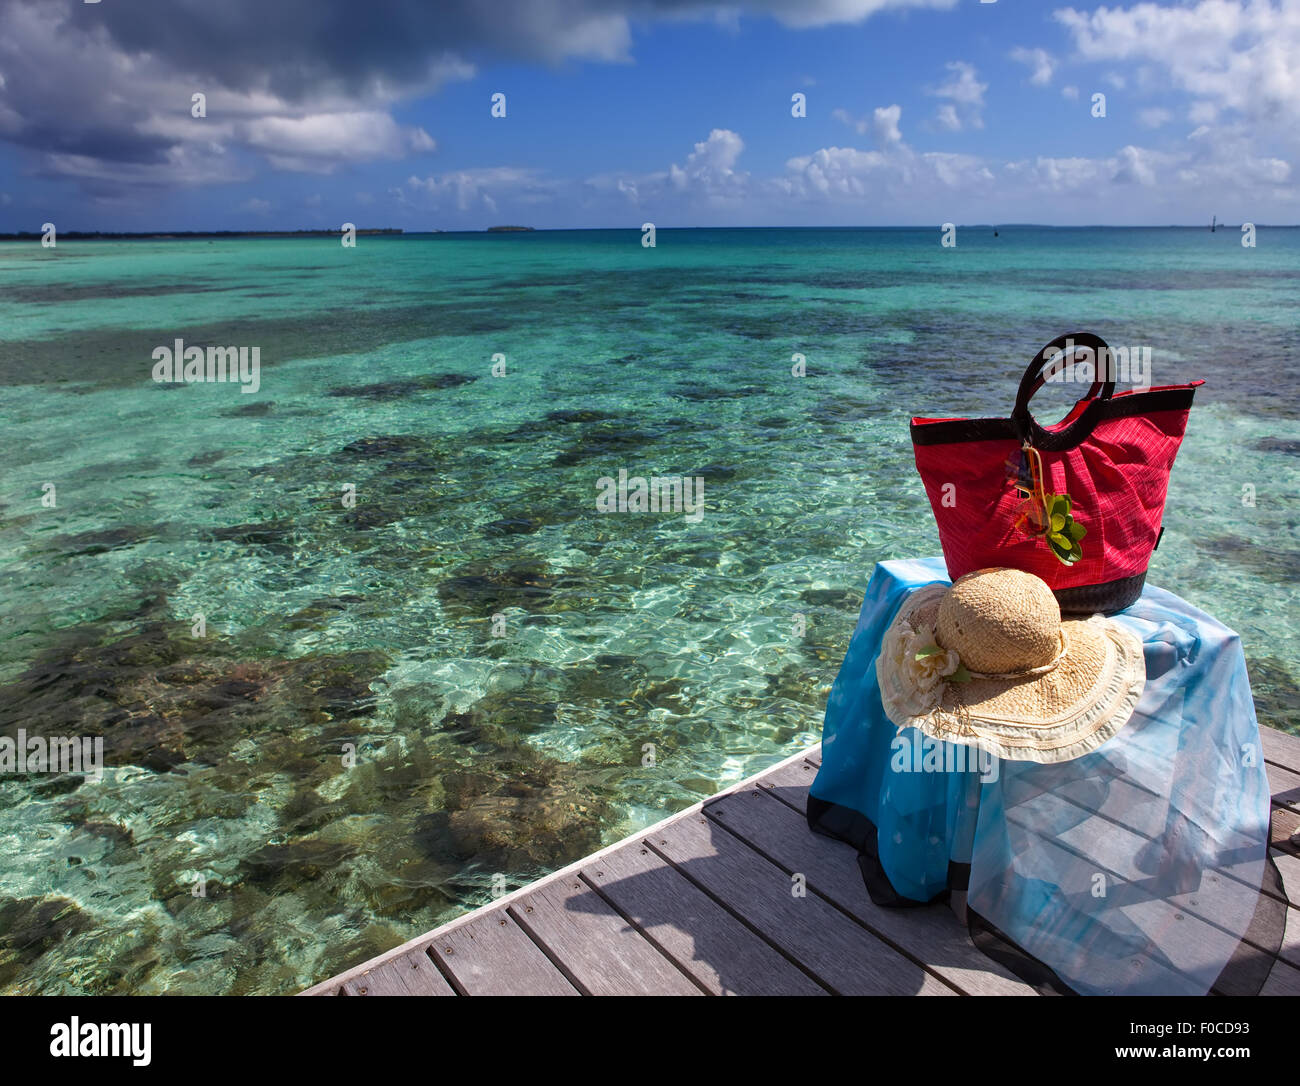 a60517c6af96 Red beach bag and and beach cape on sea background Stock Photo ...